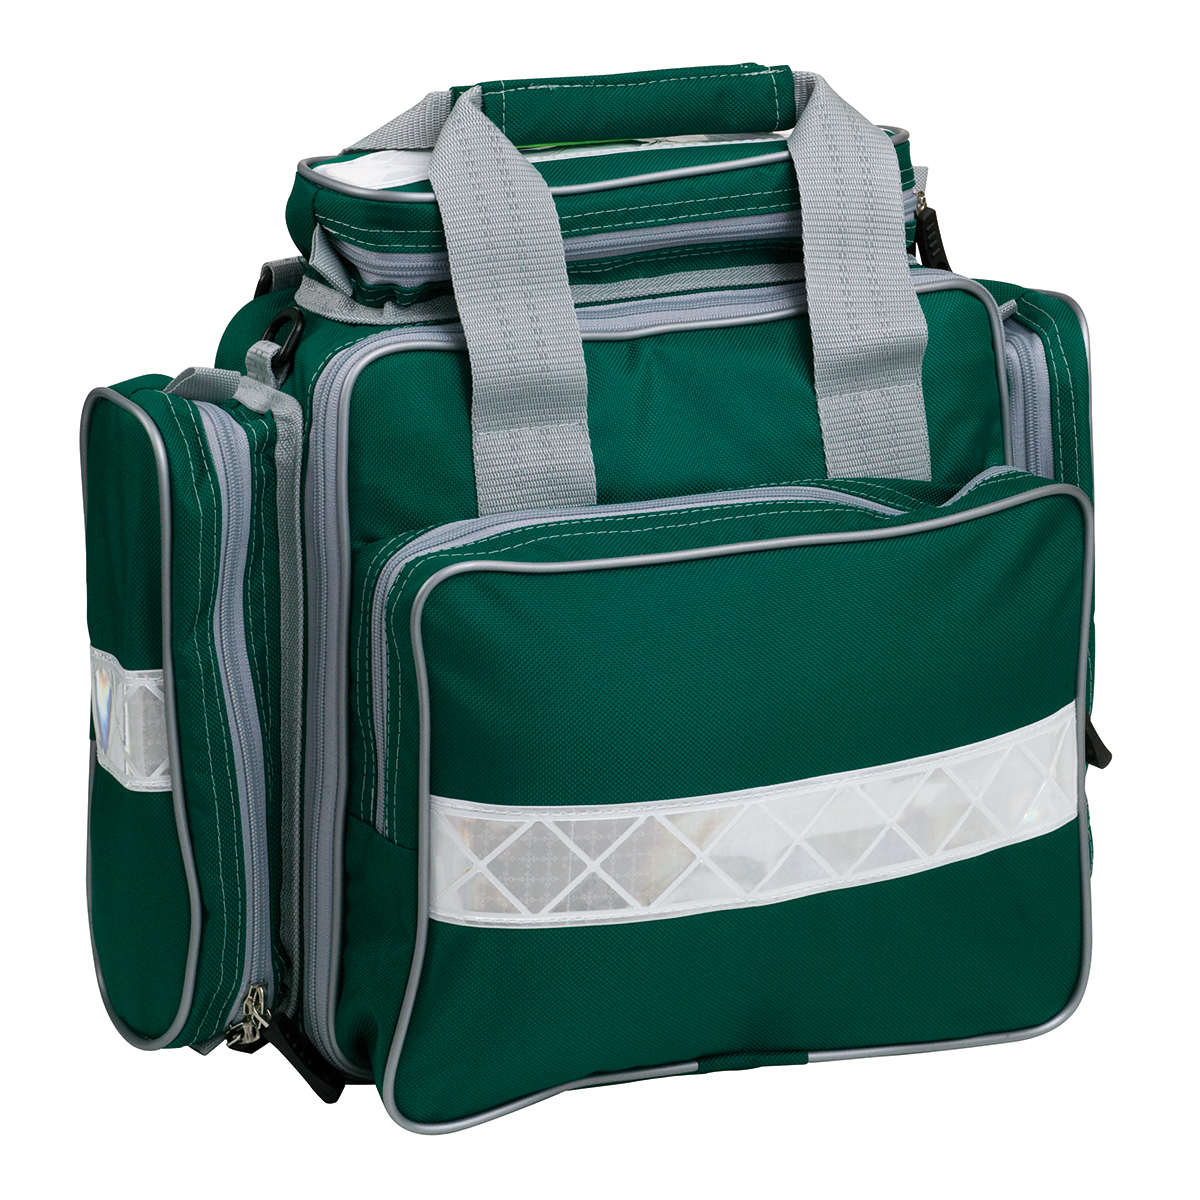 Flame Retardant Defibrillator Kit Bag